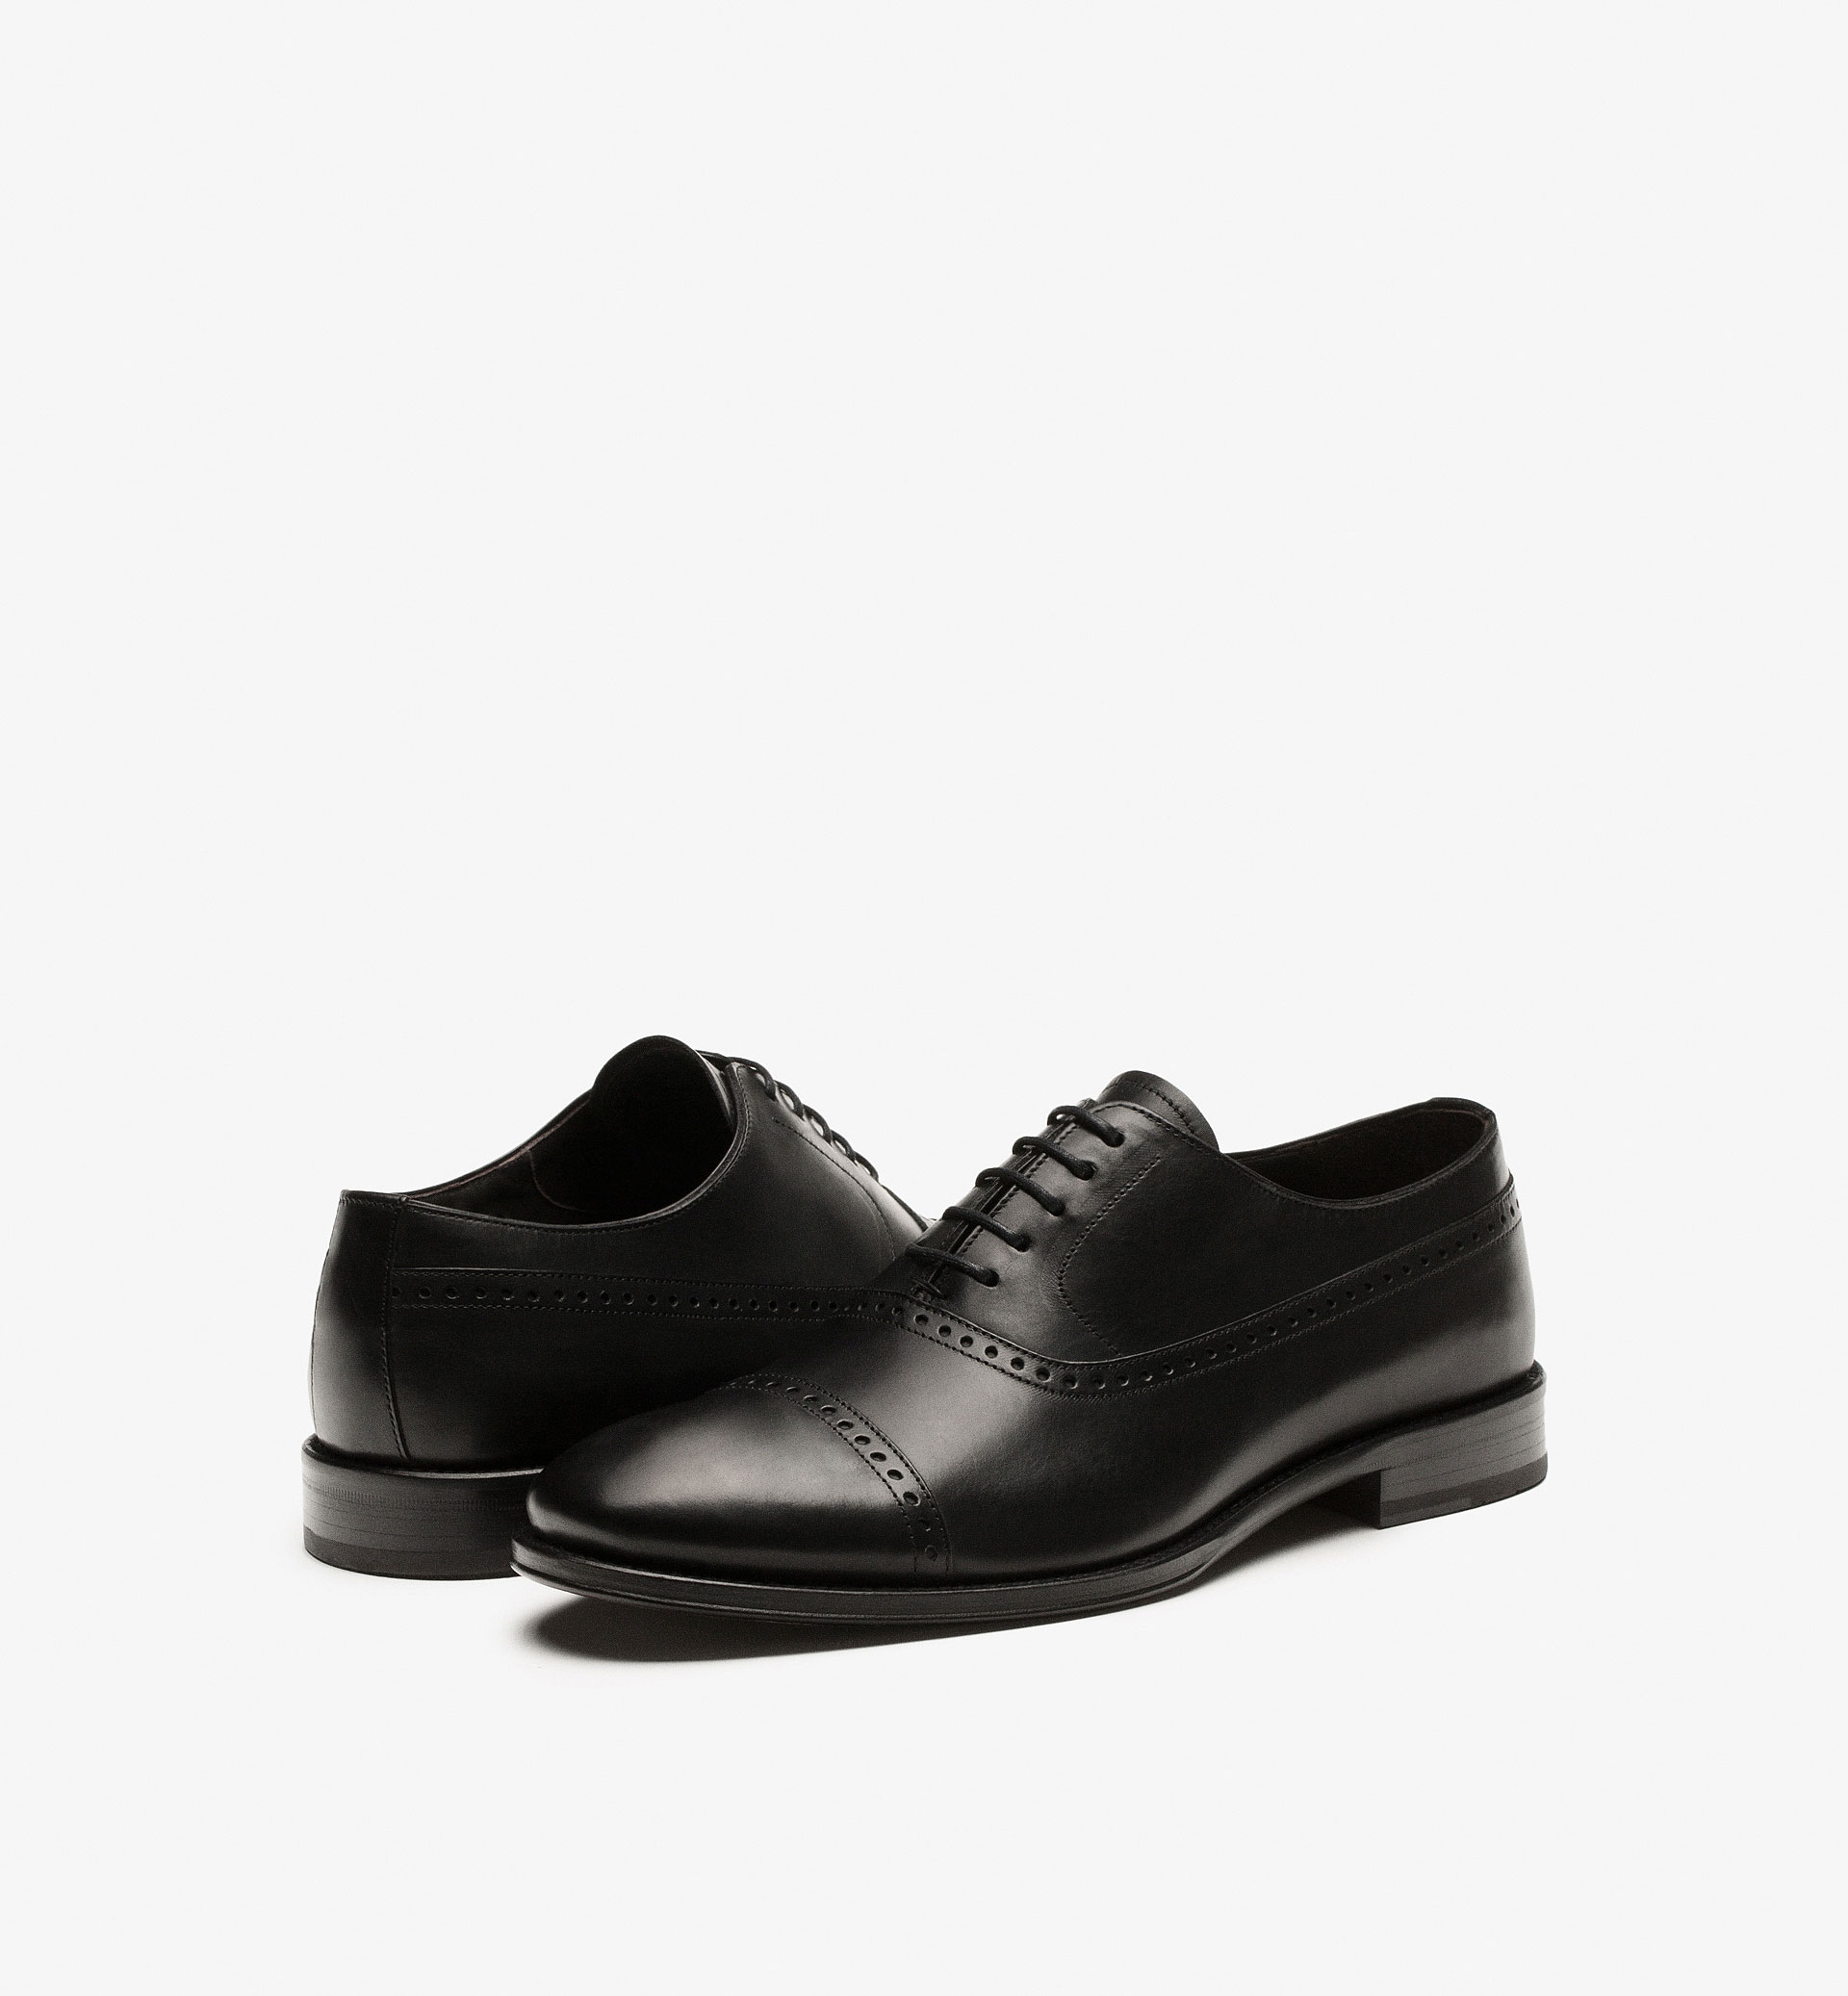 SMART BLACK OXFORD SHOES